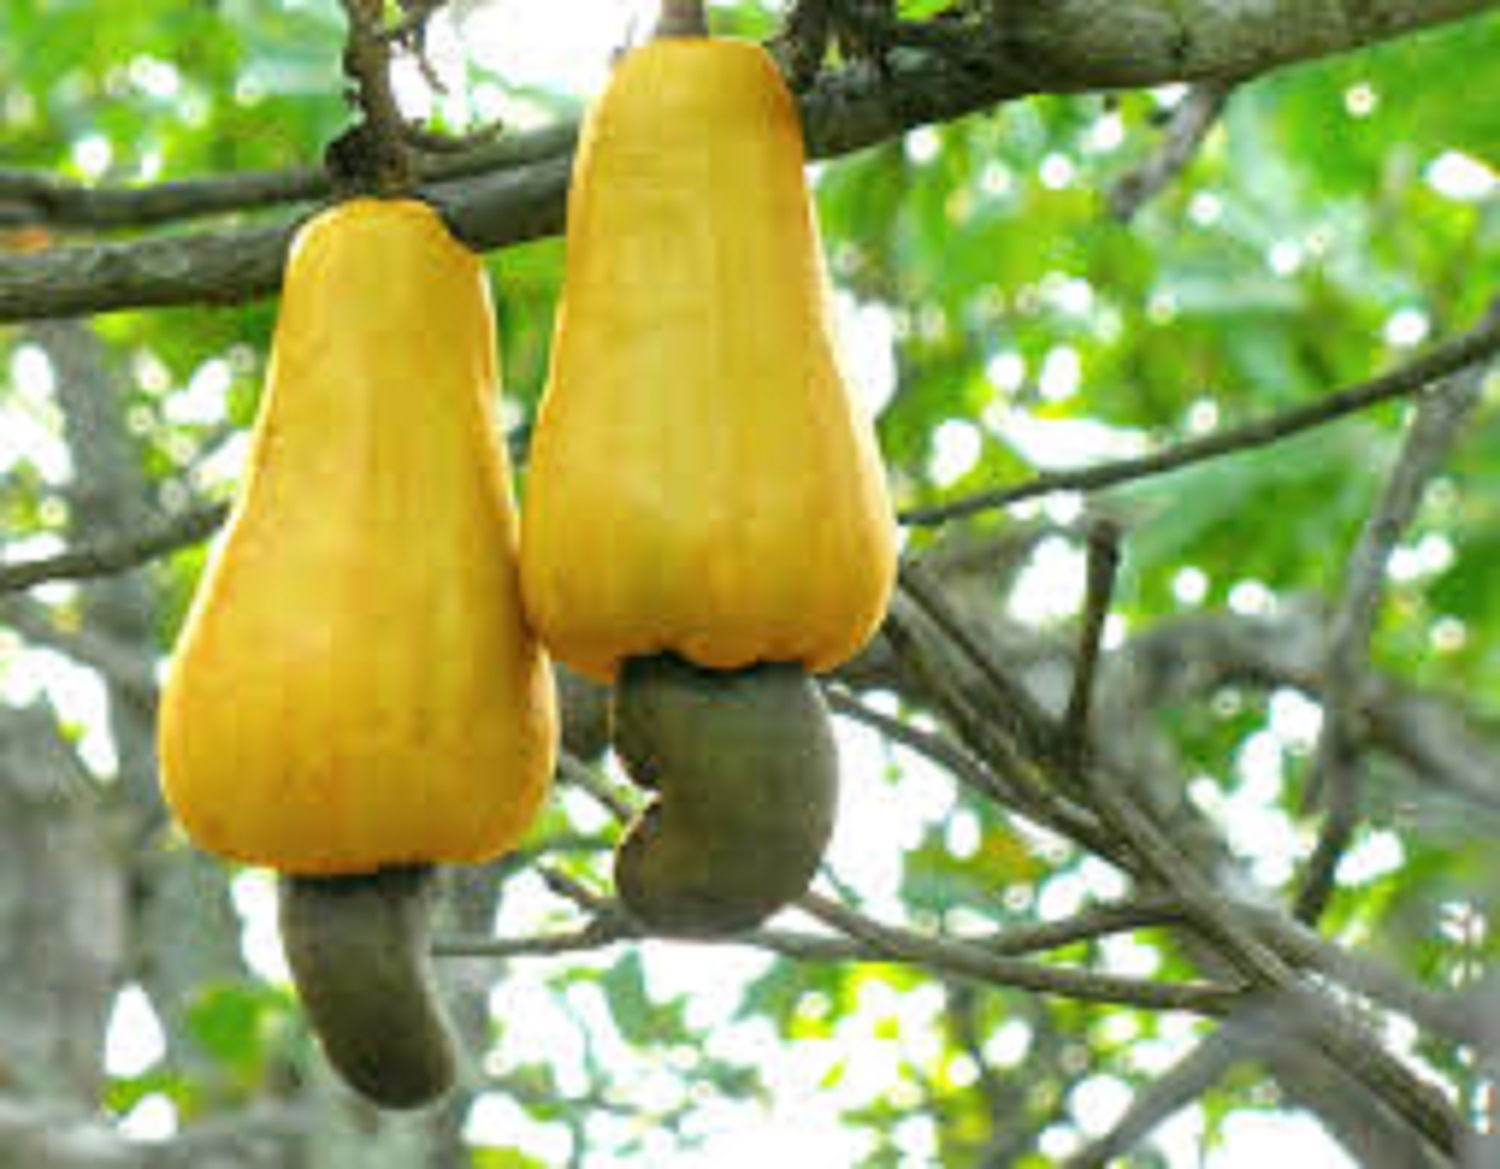 Cashew value chain receives boost as FG, US sign MoU to increase productivity